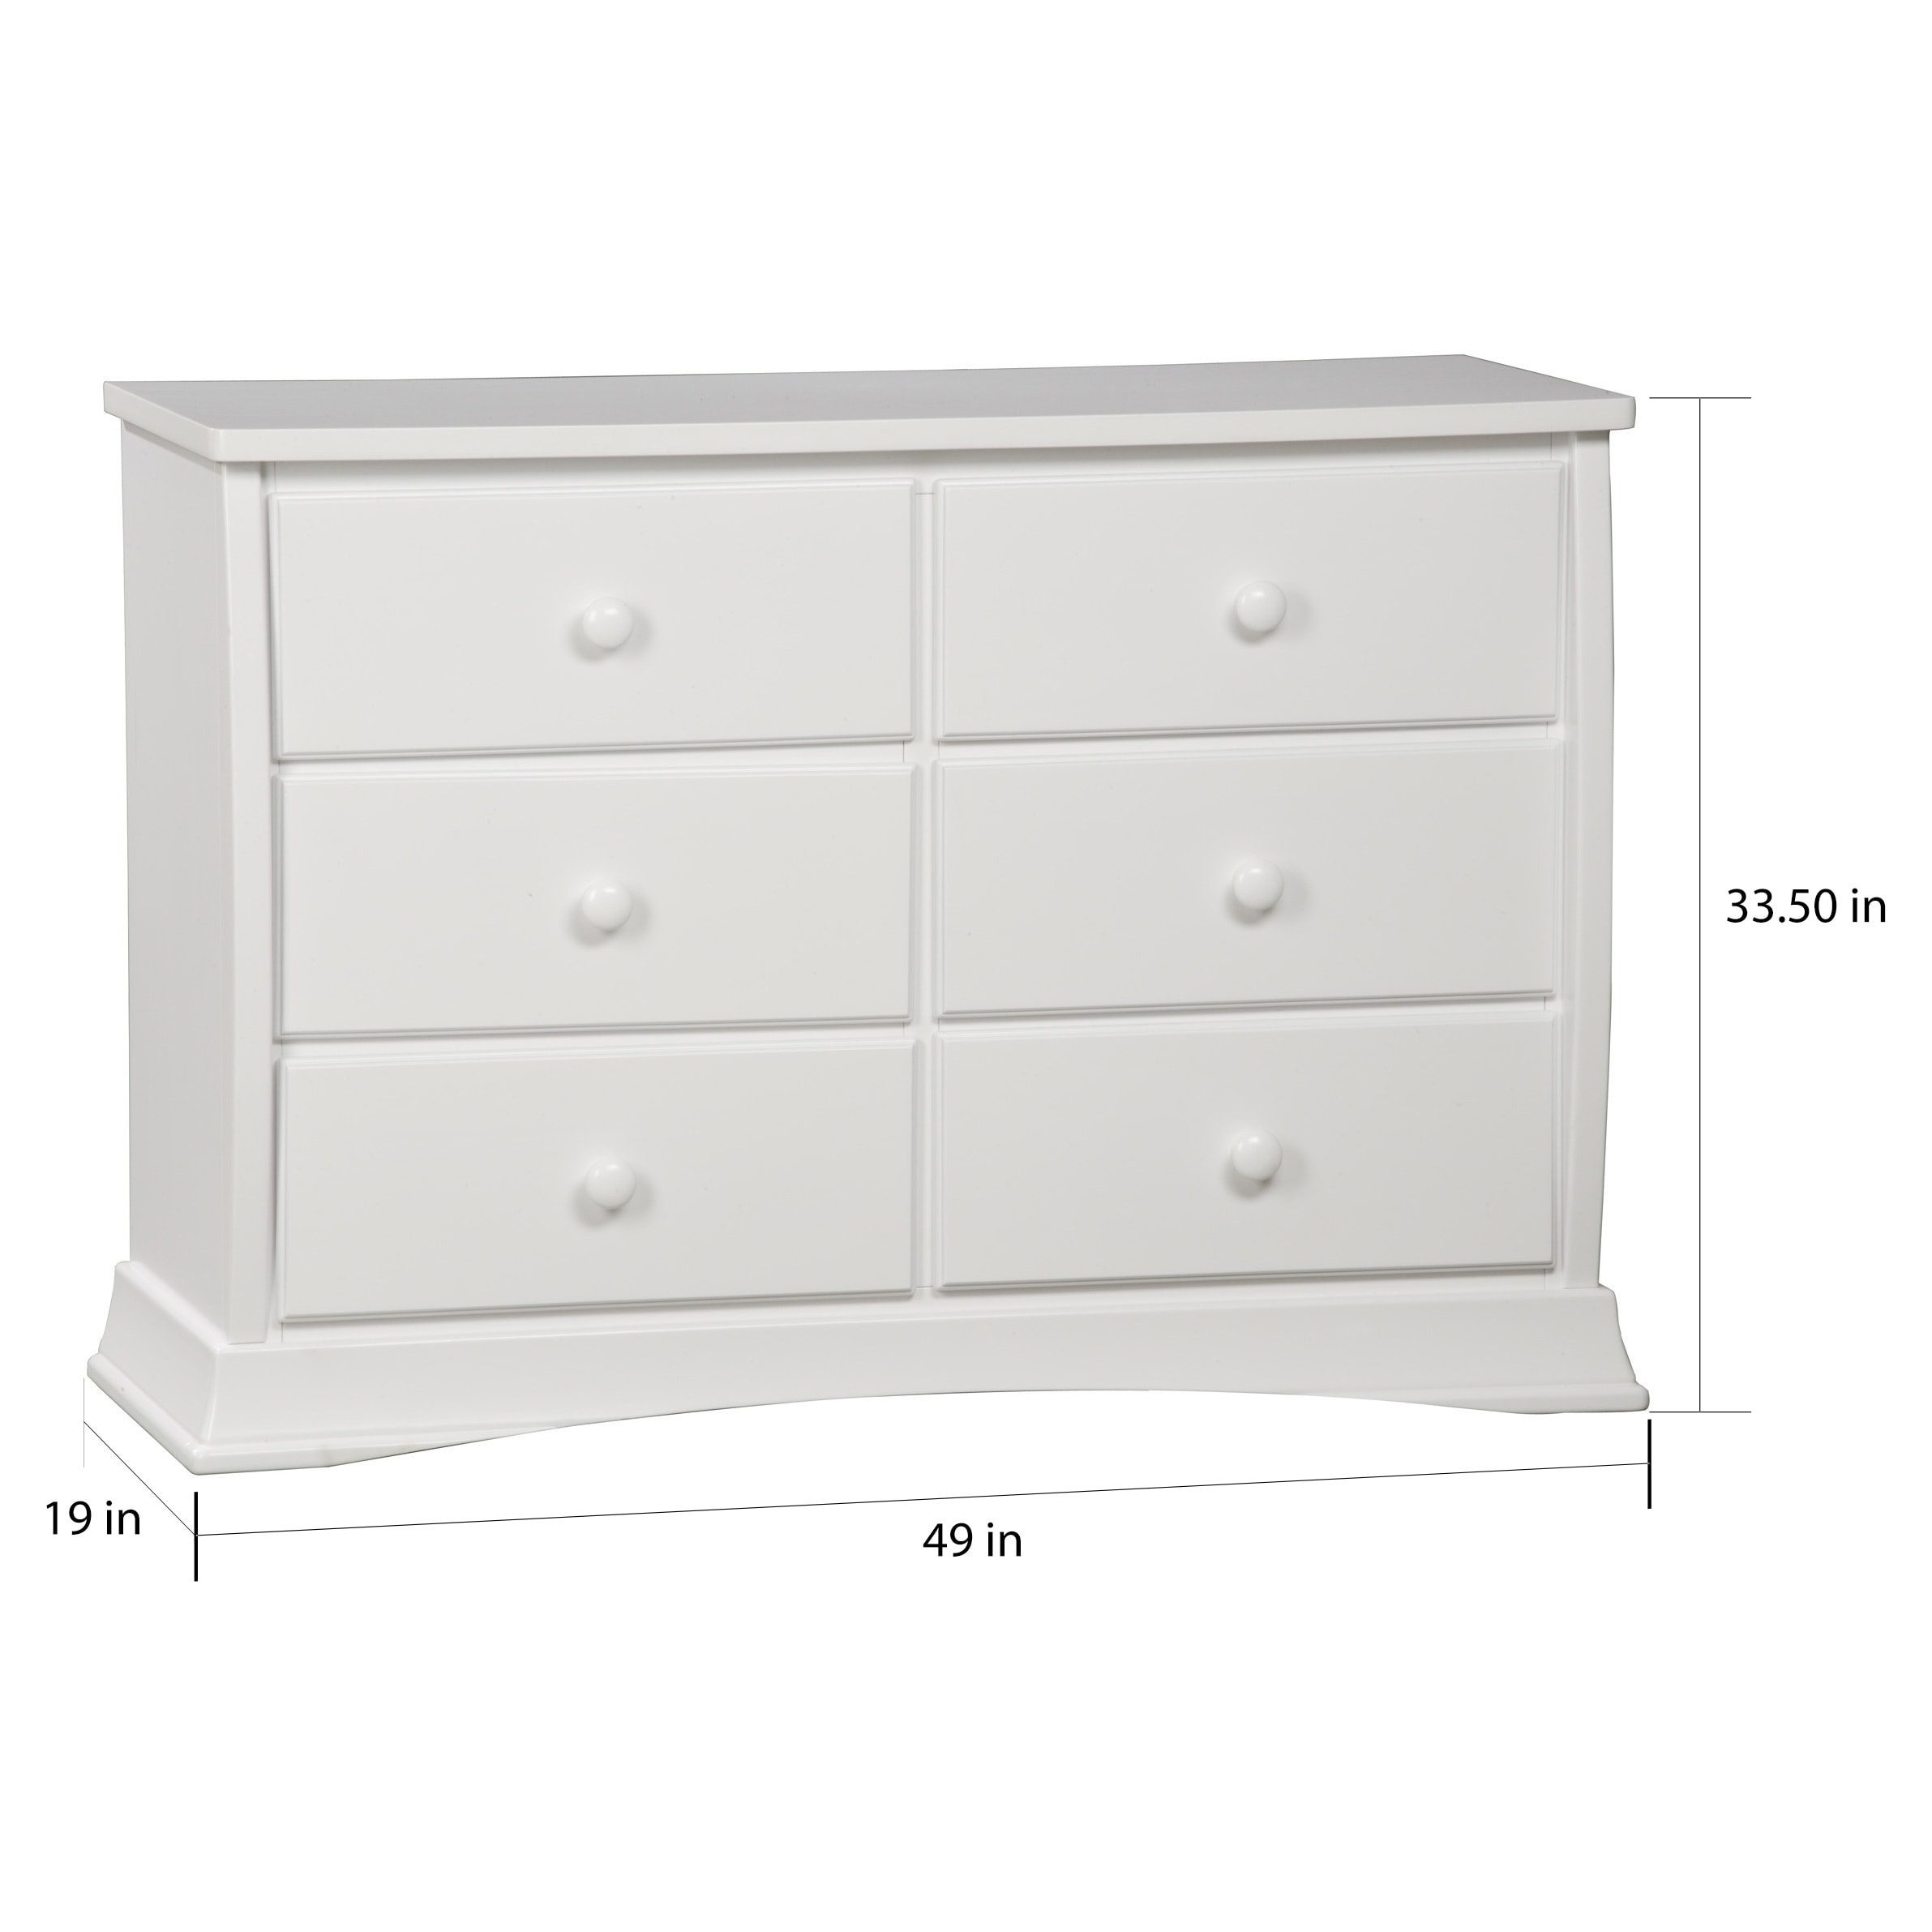 dressers white black sale wash brown for drawers chest drawer discount wood and dark ikea wide tall cheap dresser short set of small